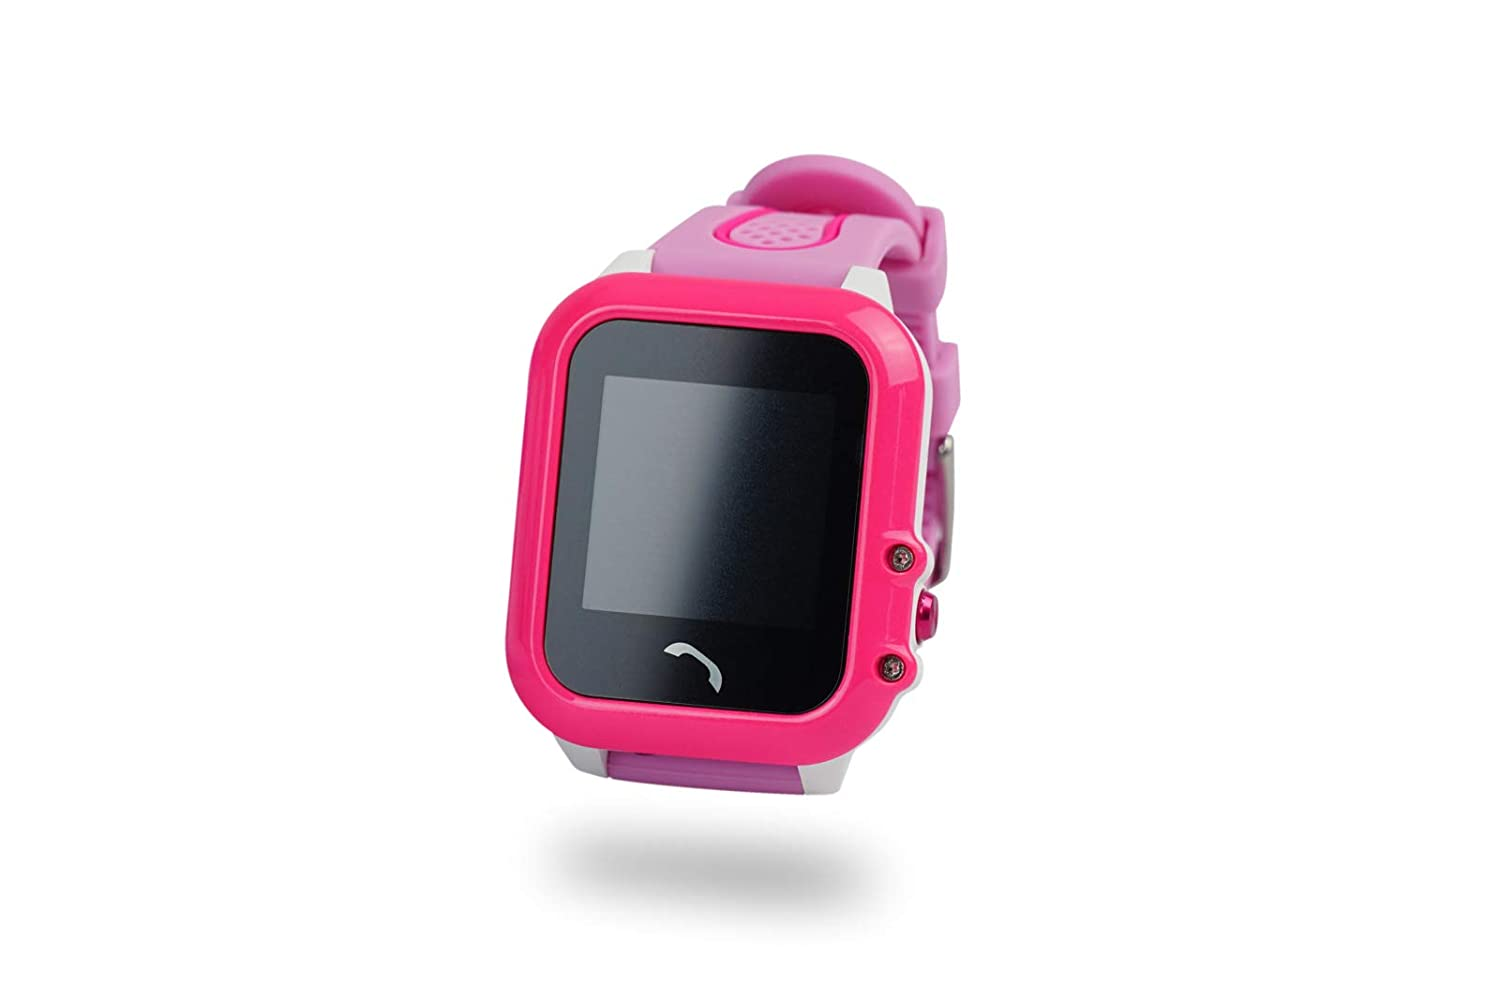 xblitz Kids Watch GPS V. Find Me, Color Rosa, Sensible a la ...